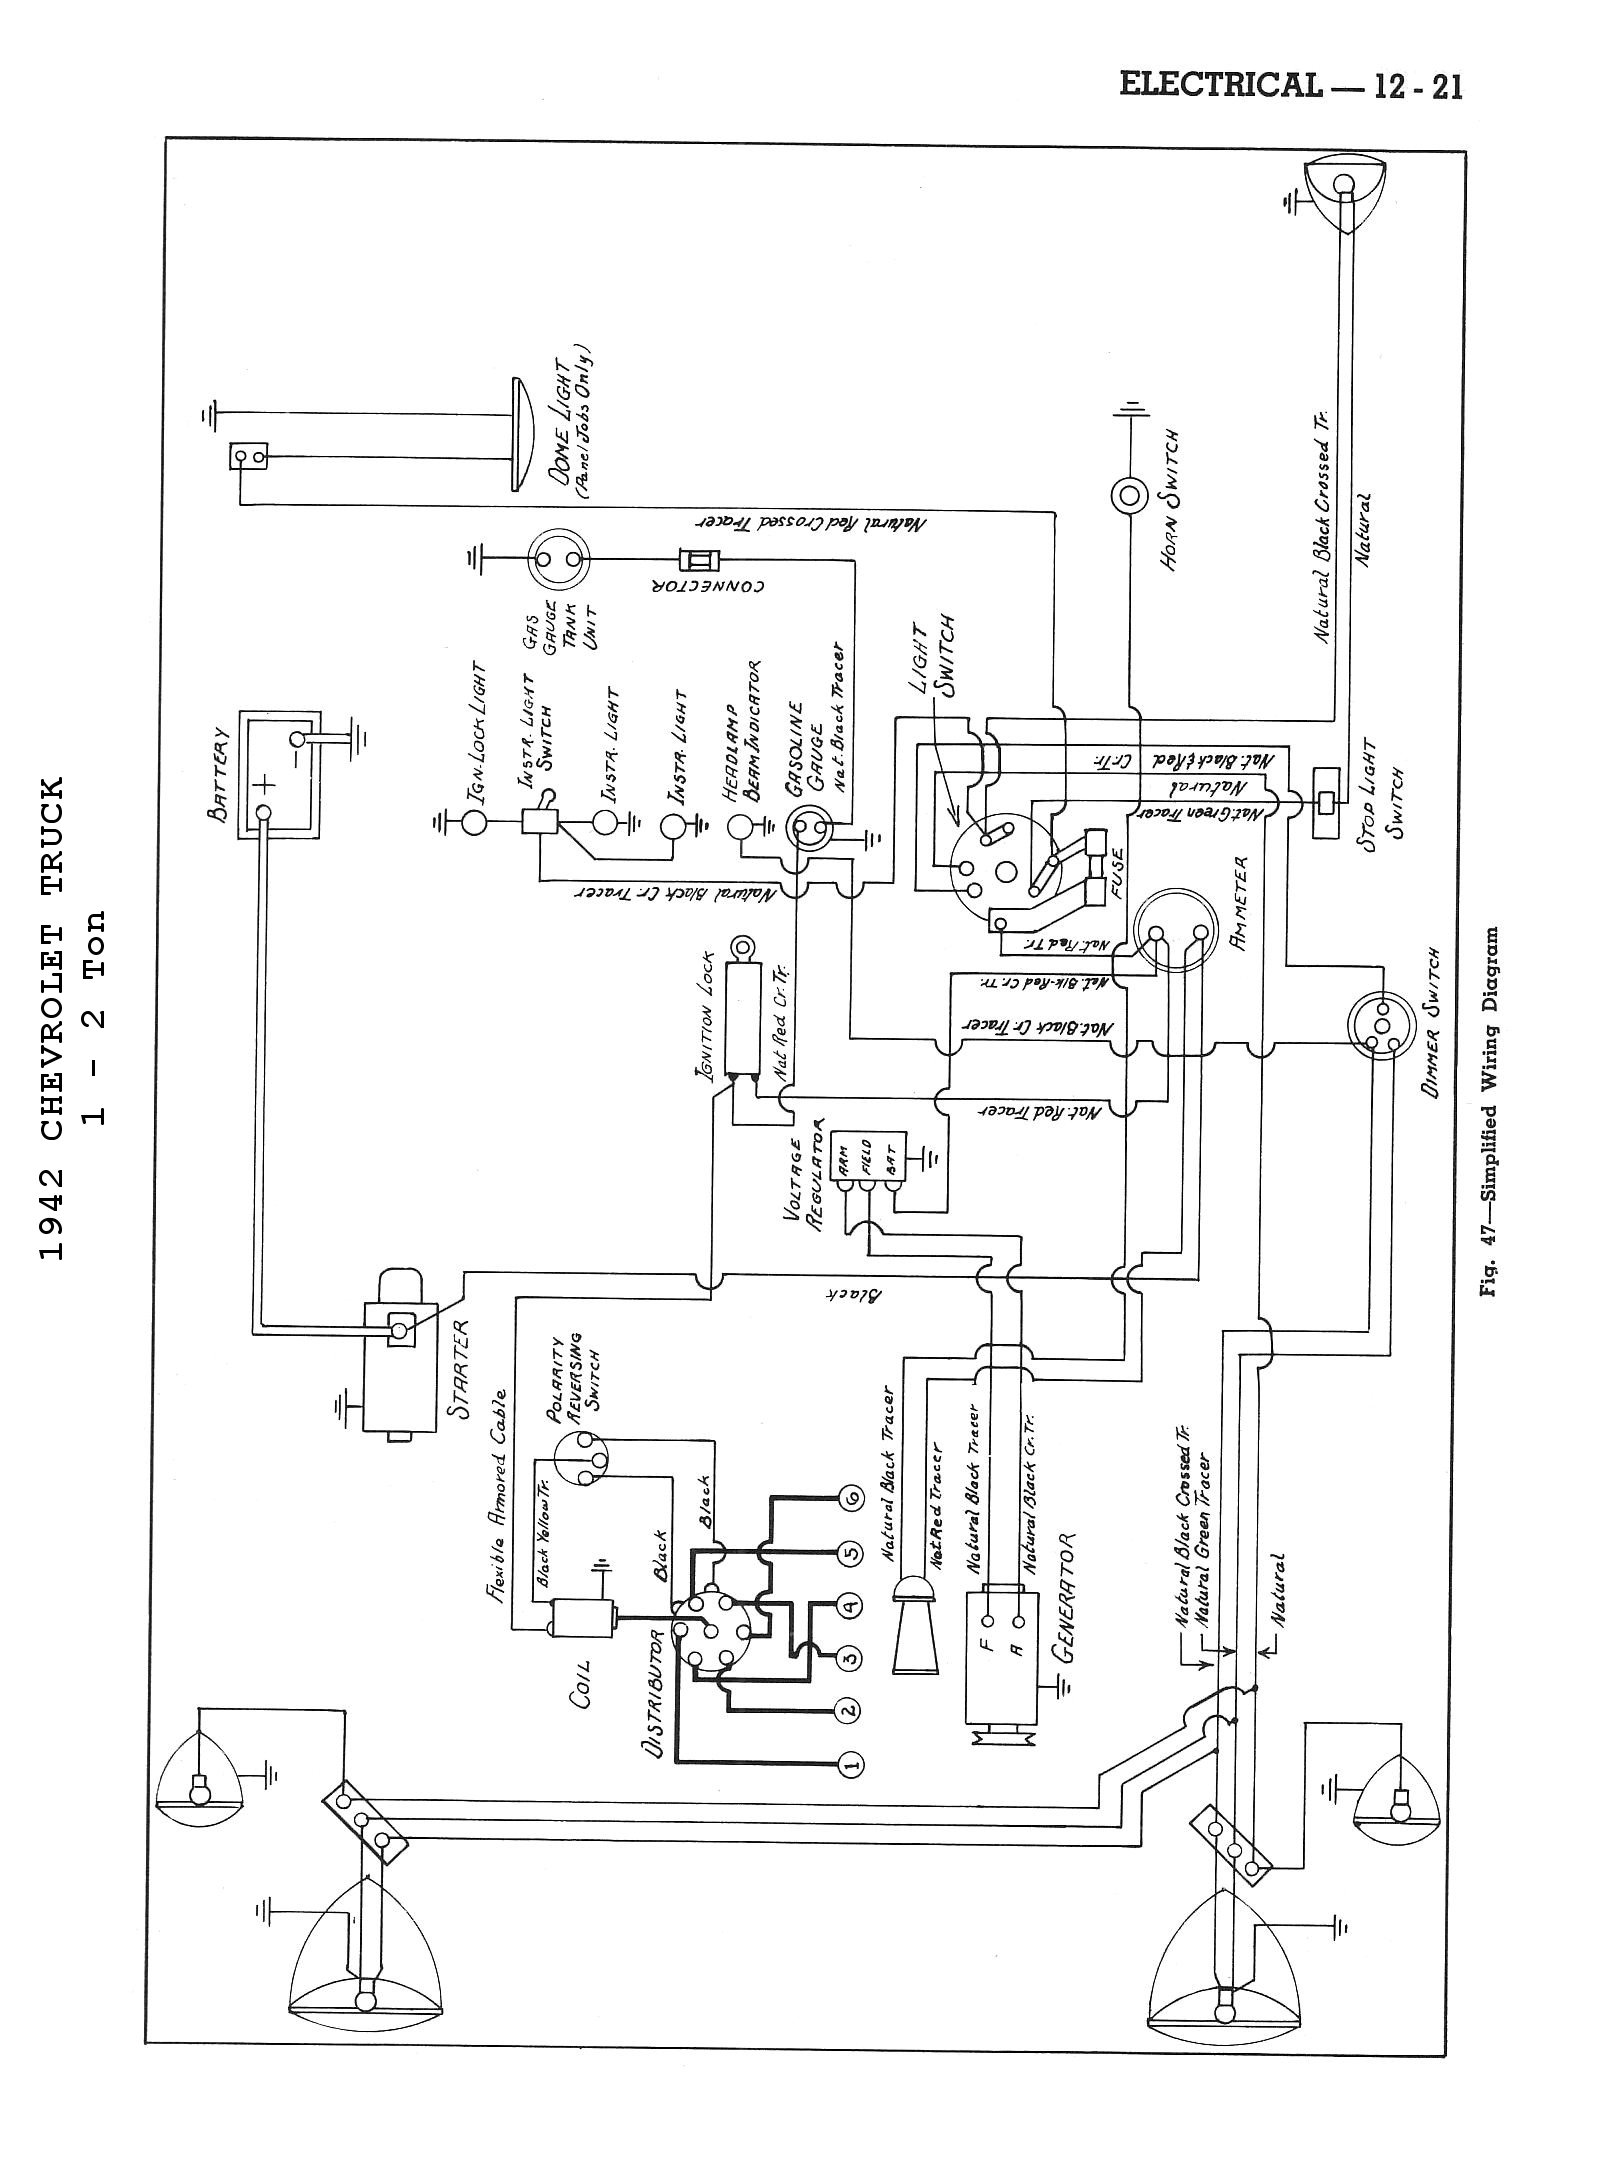 55 Bel Air Wiring Diagram | Wiring Diagram  Chevy Headlight Wiring Diagram on